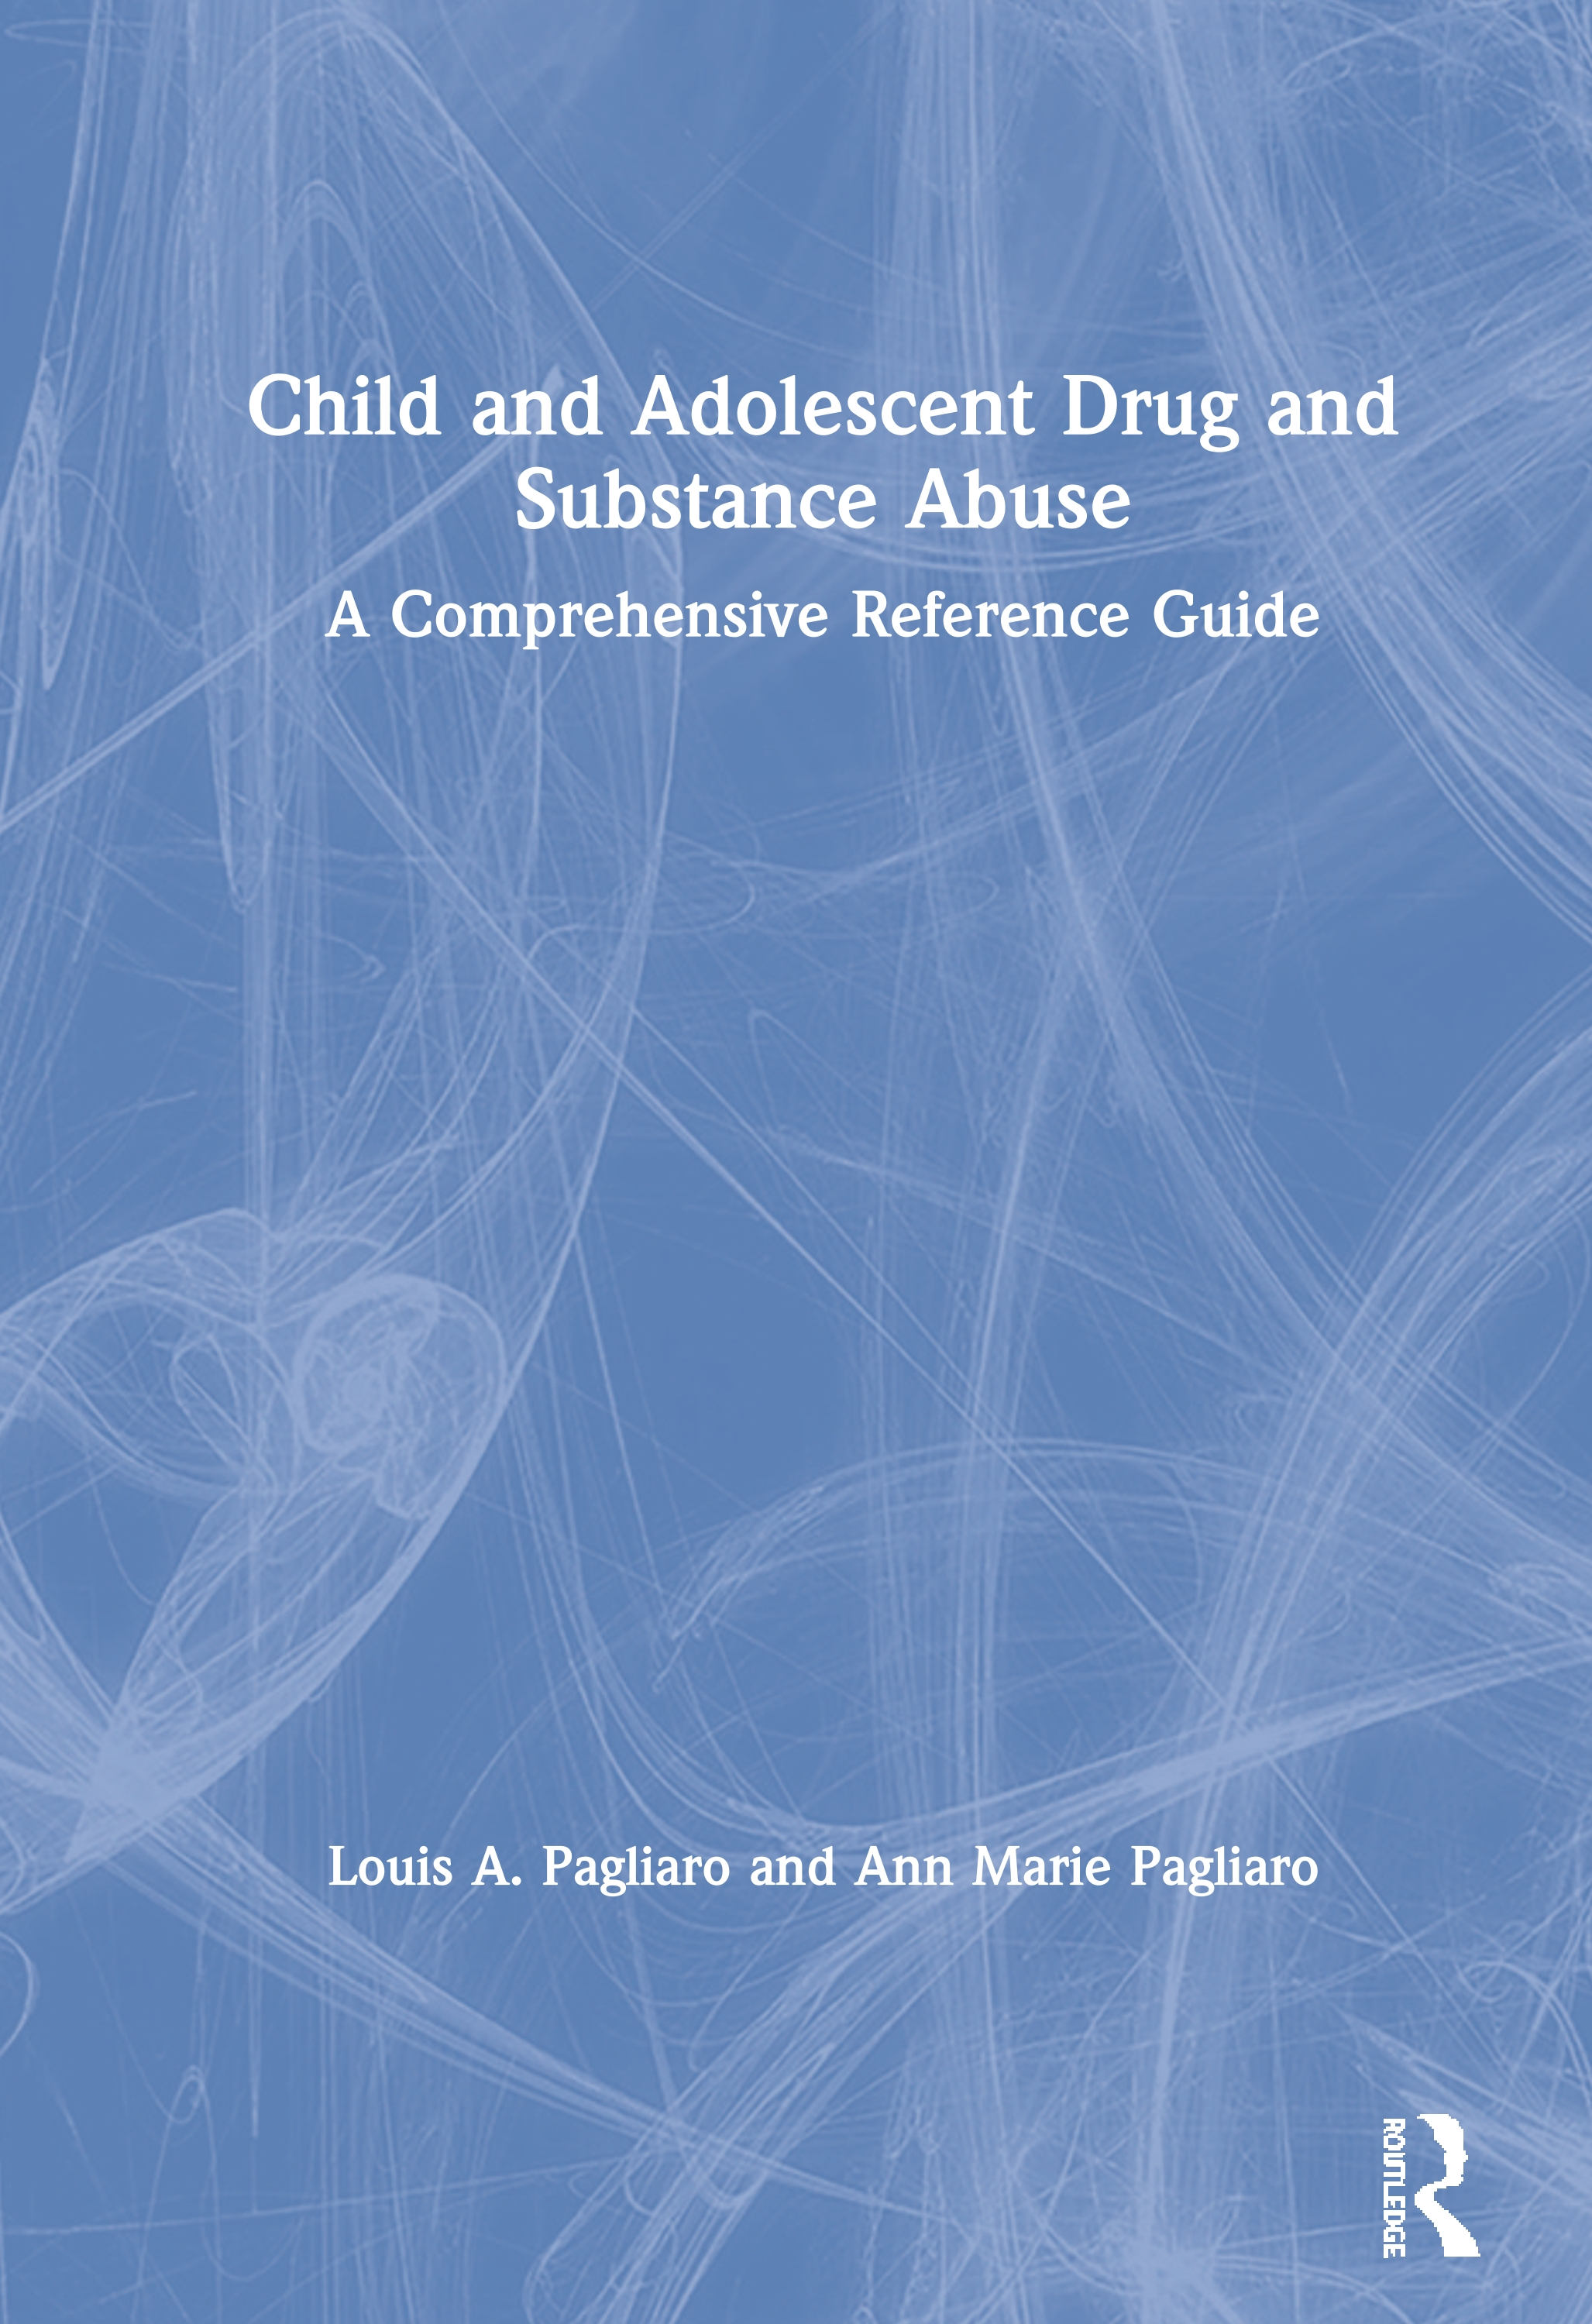 Child and Adolescent Drug and Substance Abuse: A Comprehensive Reference Guide book cover